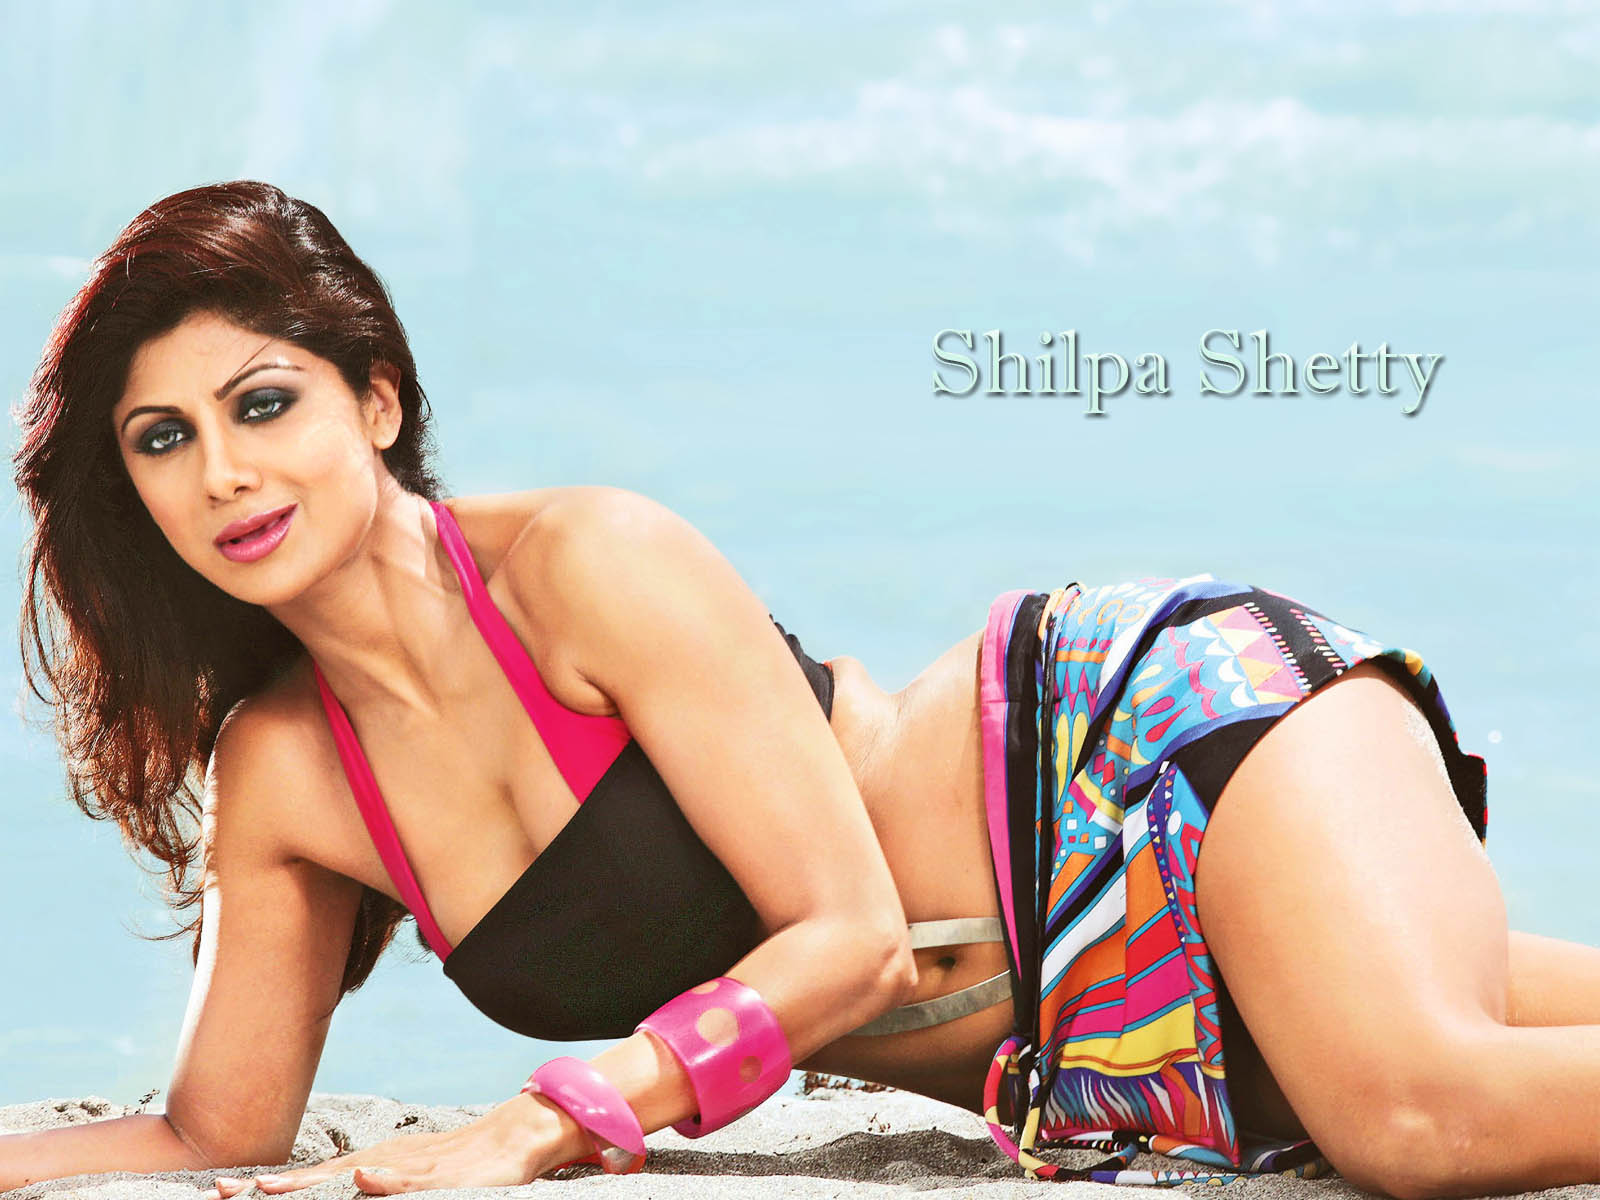 Shilpa Shetty Gallery - celebrity